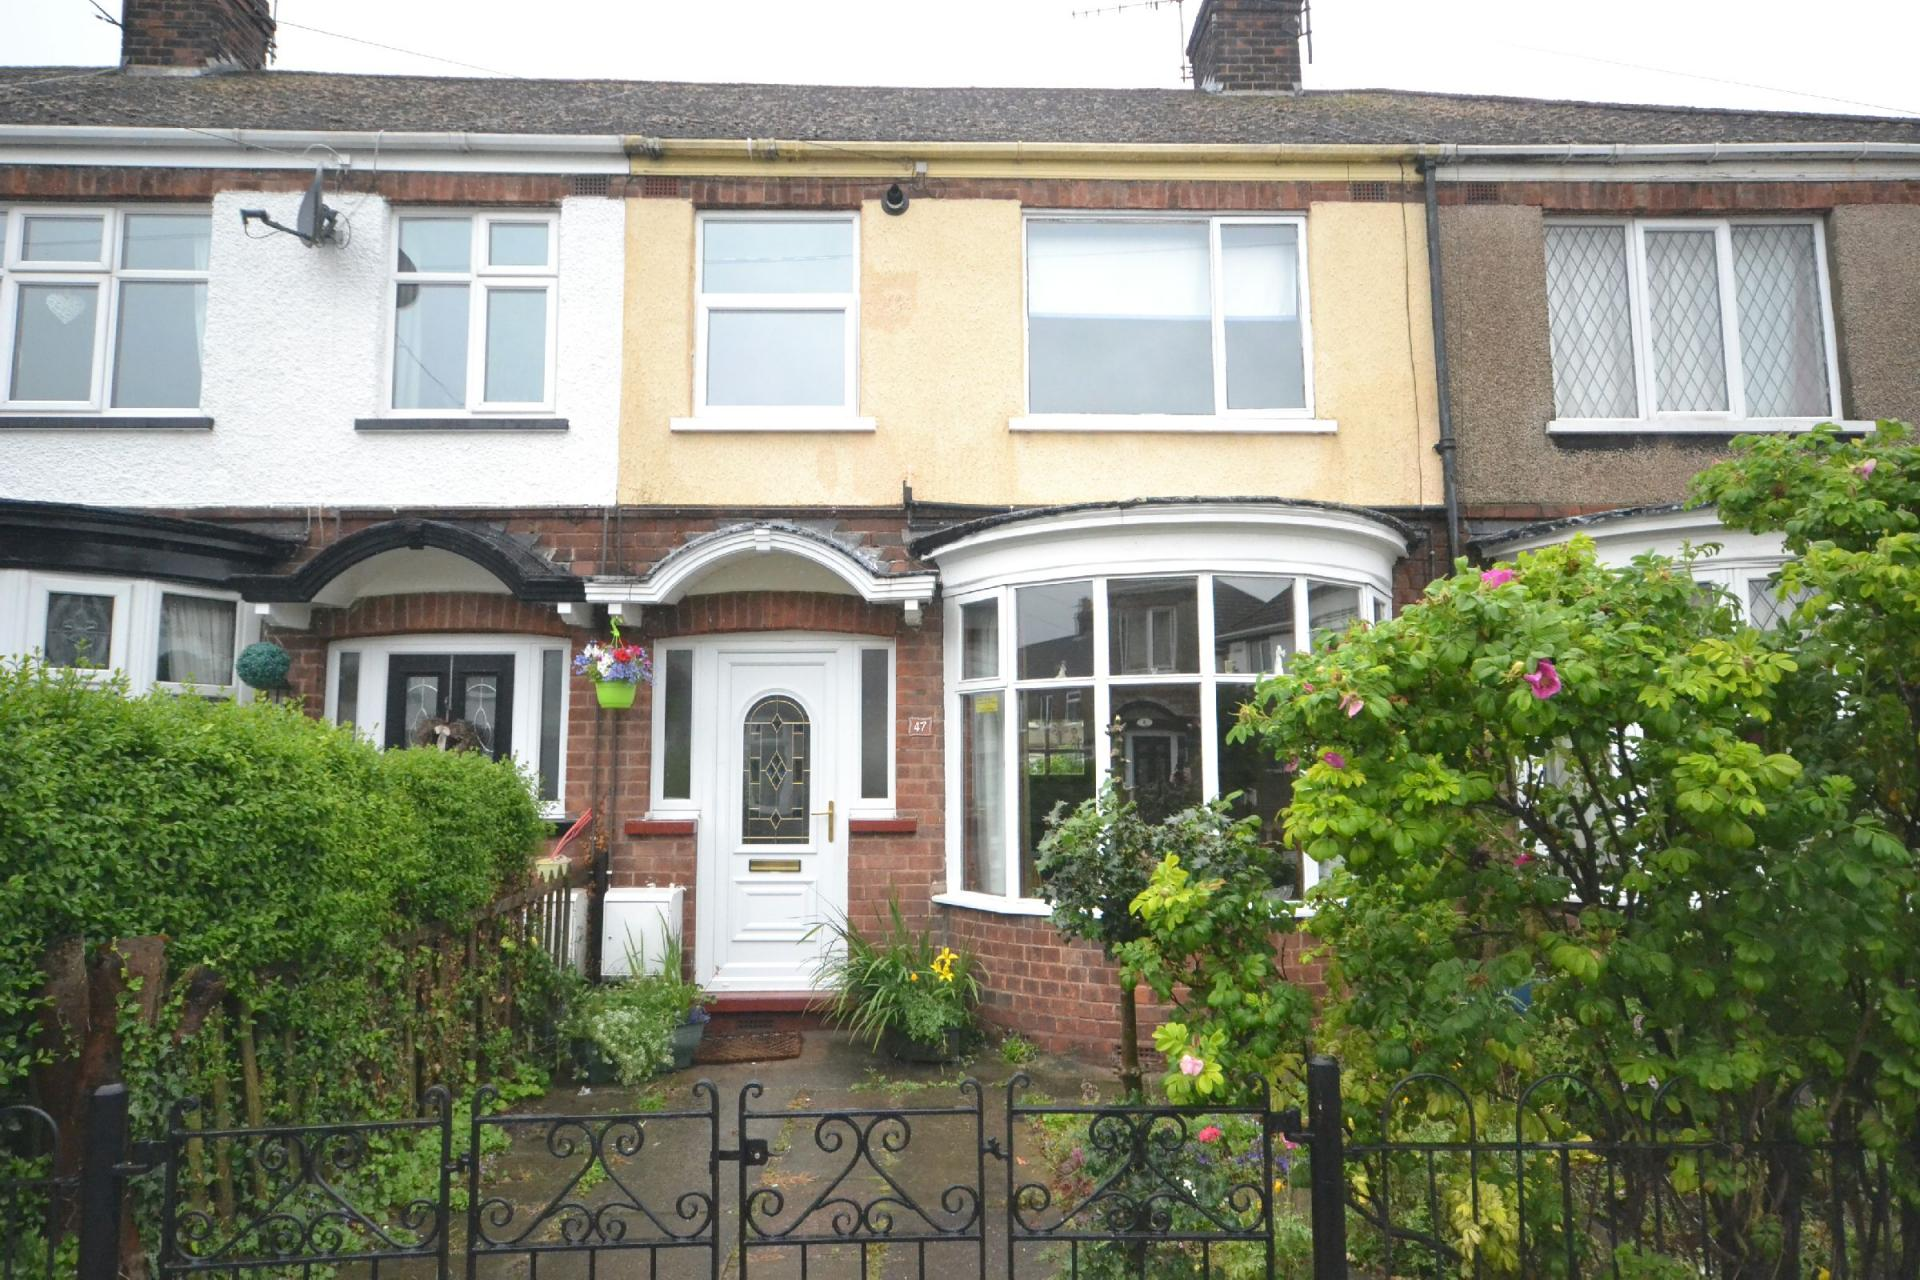 3 Bedroom Terraced House For Sale In Grimsby